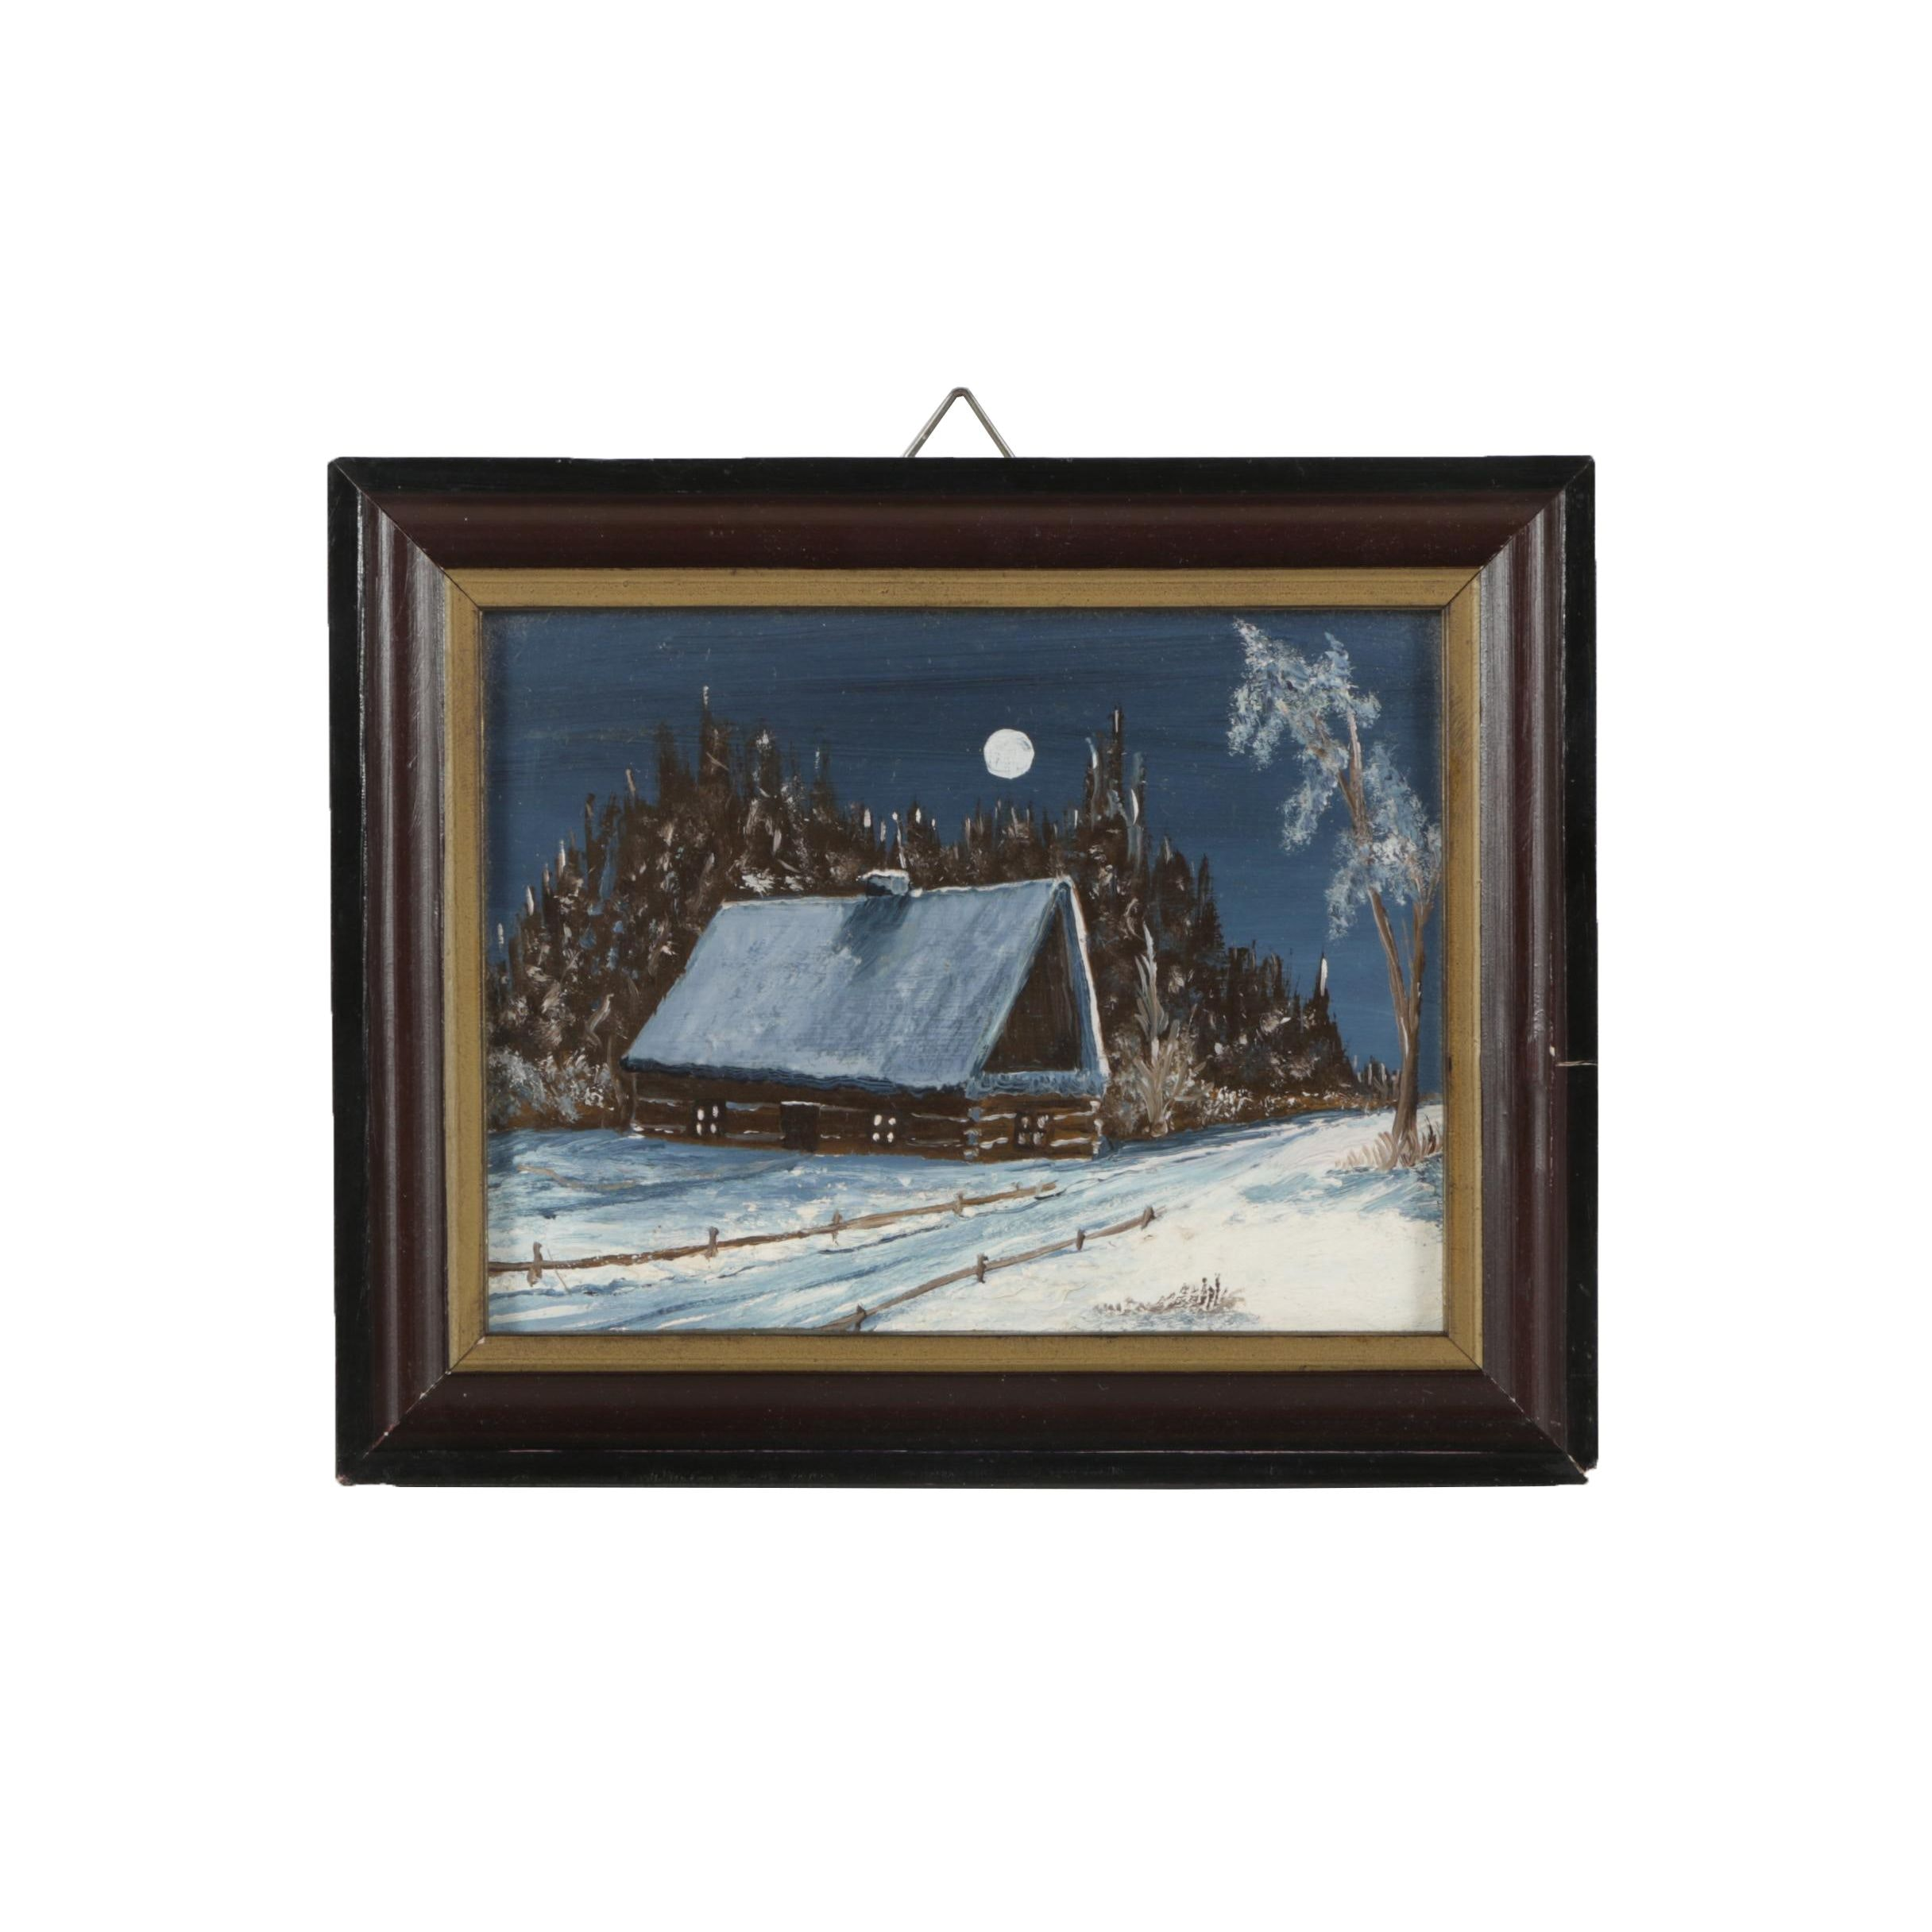 H. Wisniewska Oil Painting of a Winter Landscape